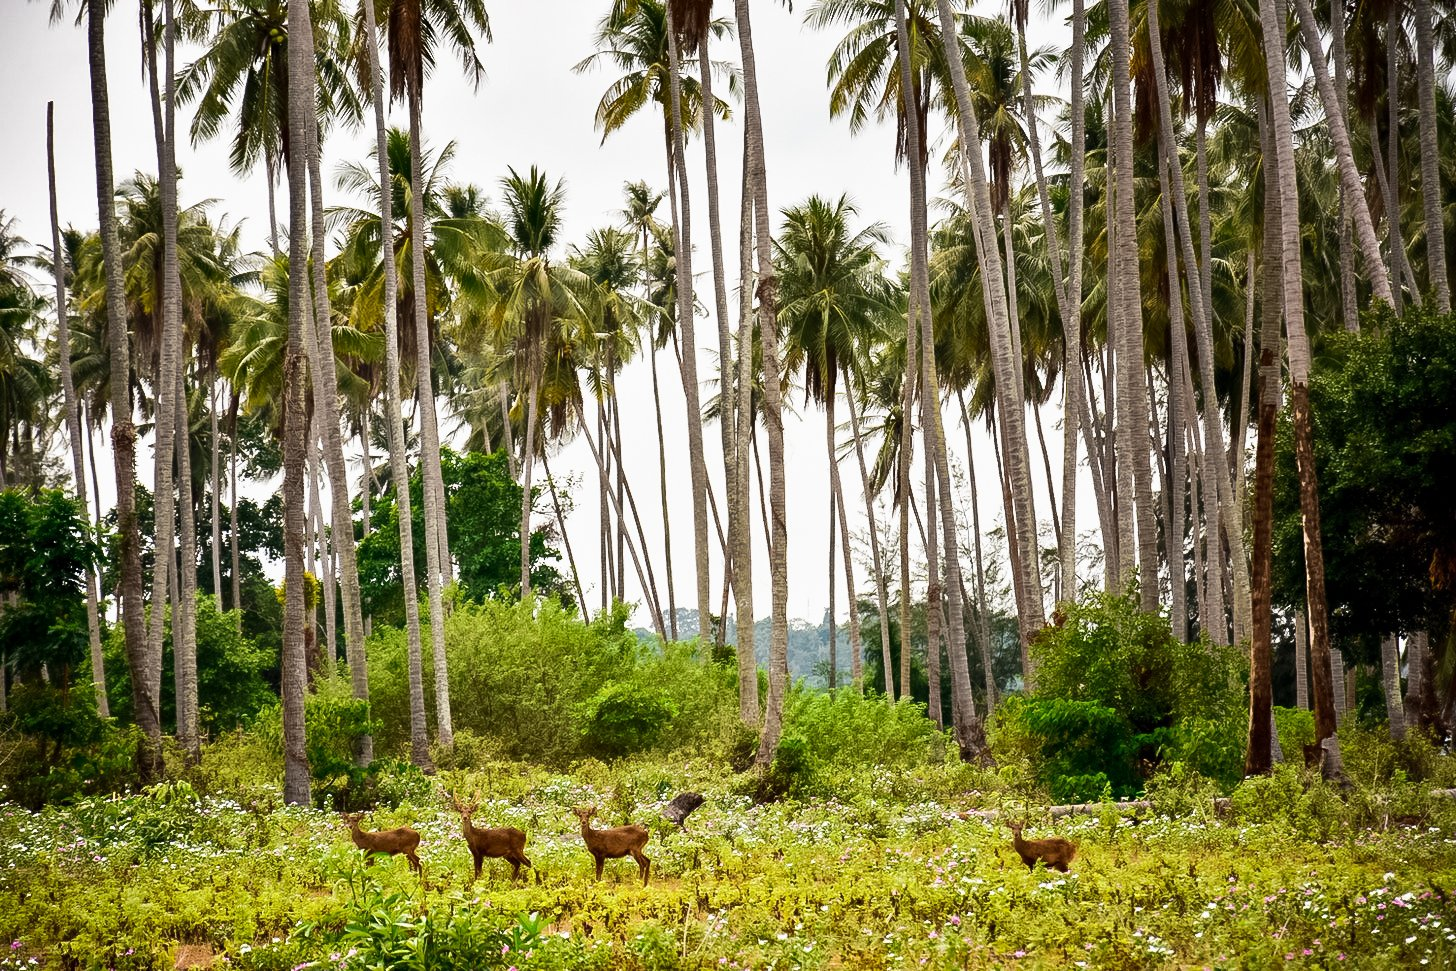 Deer island Koh Kradad is famous for having many friendly deer and it's with beautiful nature